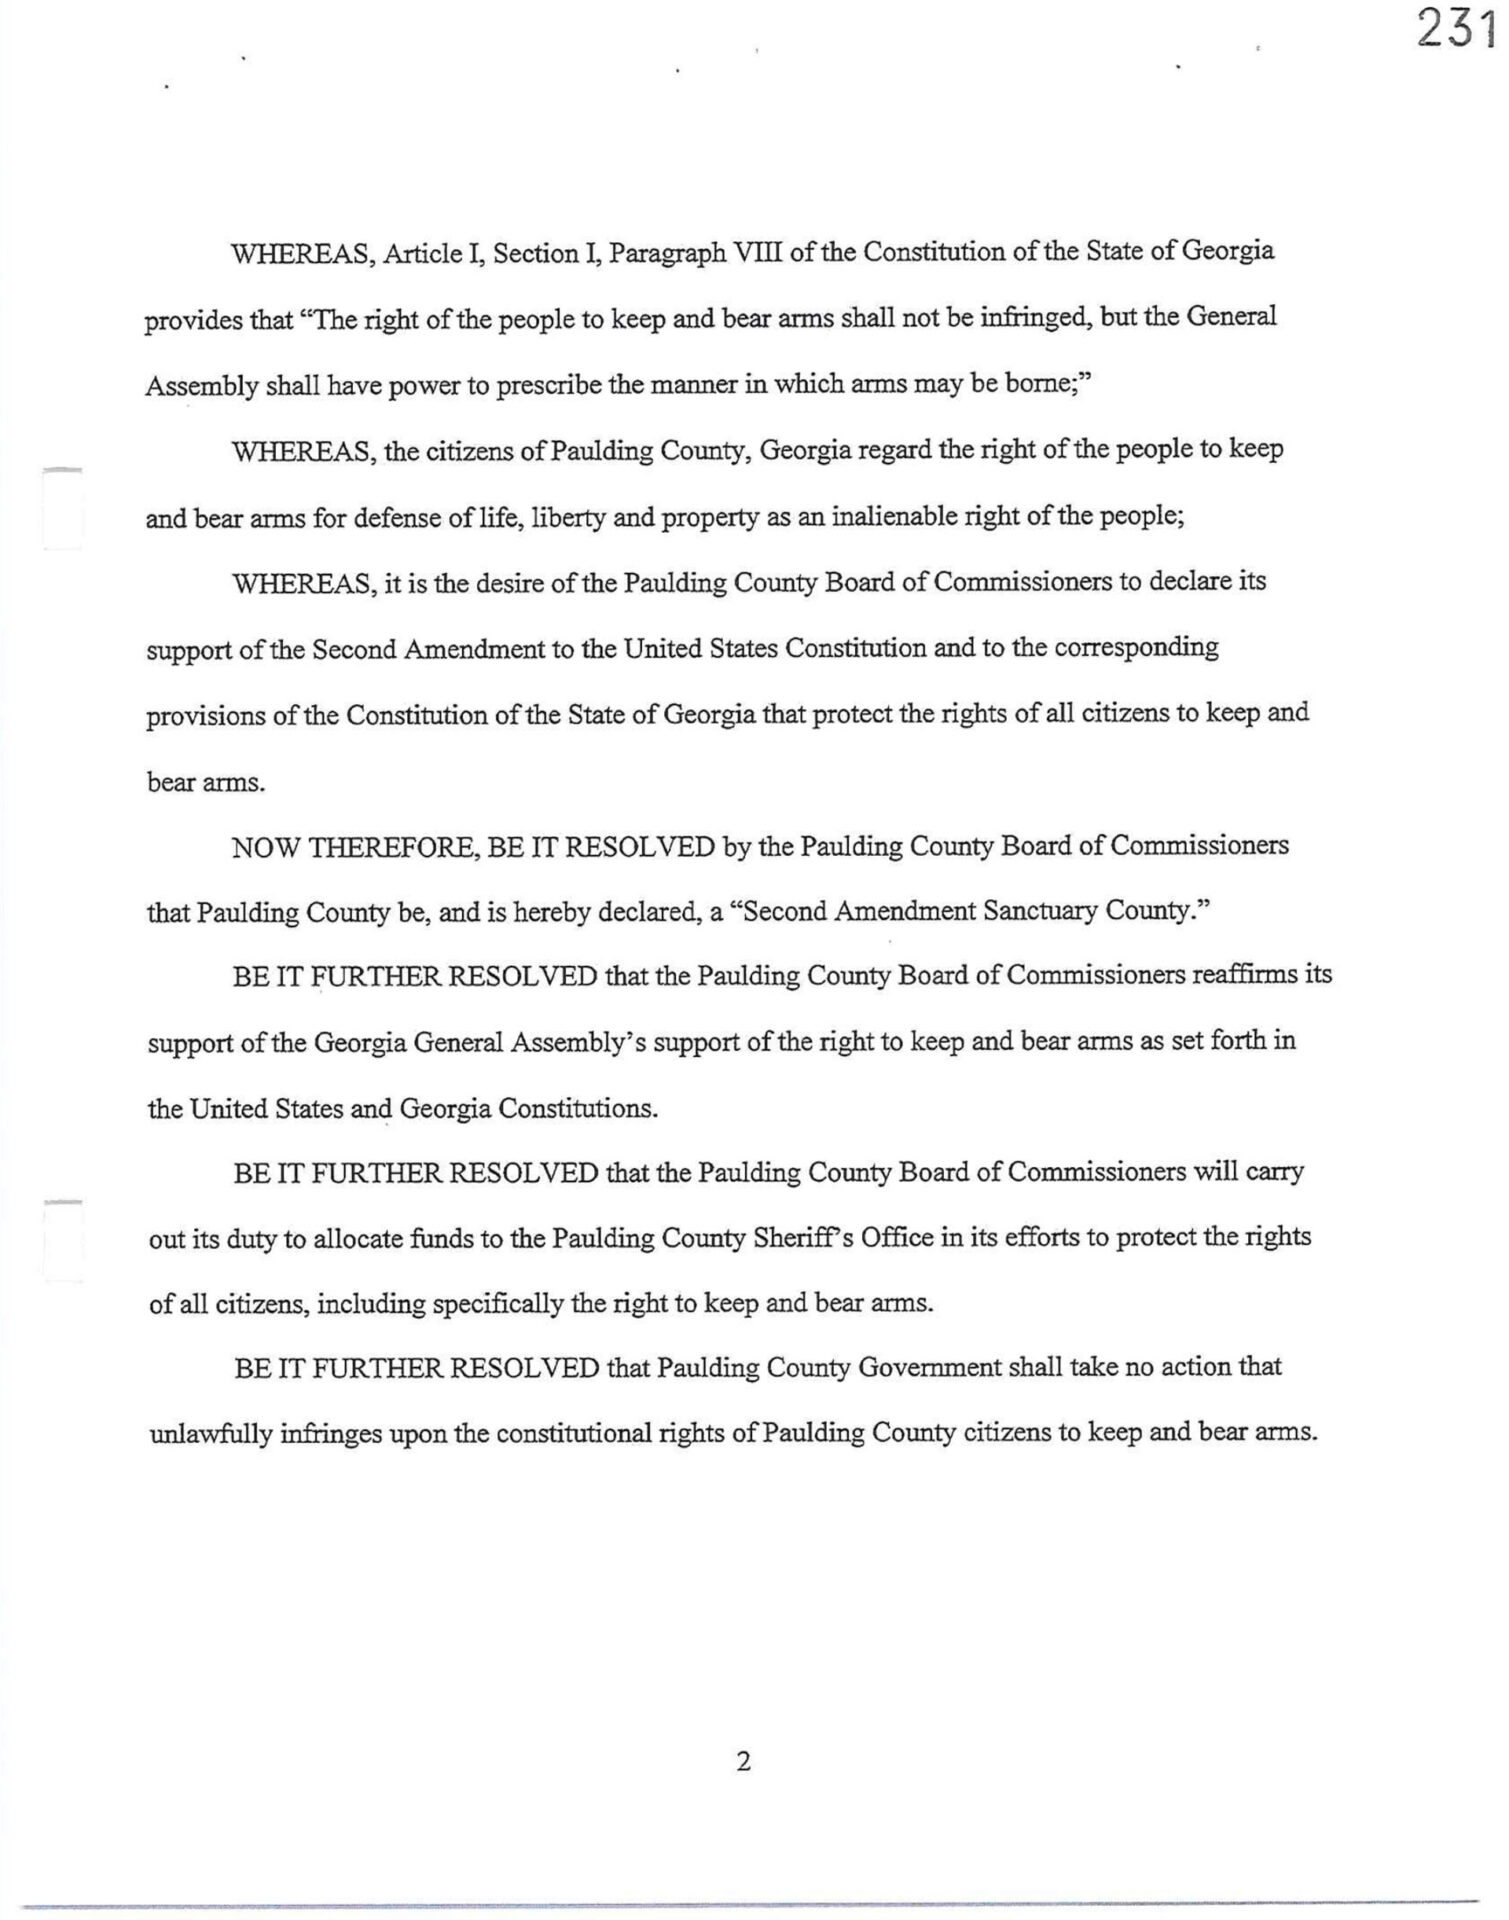 Paulding County 2A Sanctuary Resolution Page 2